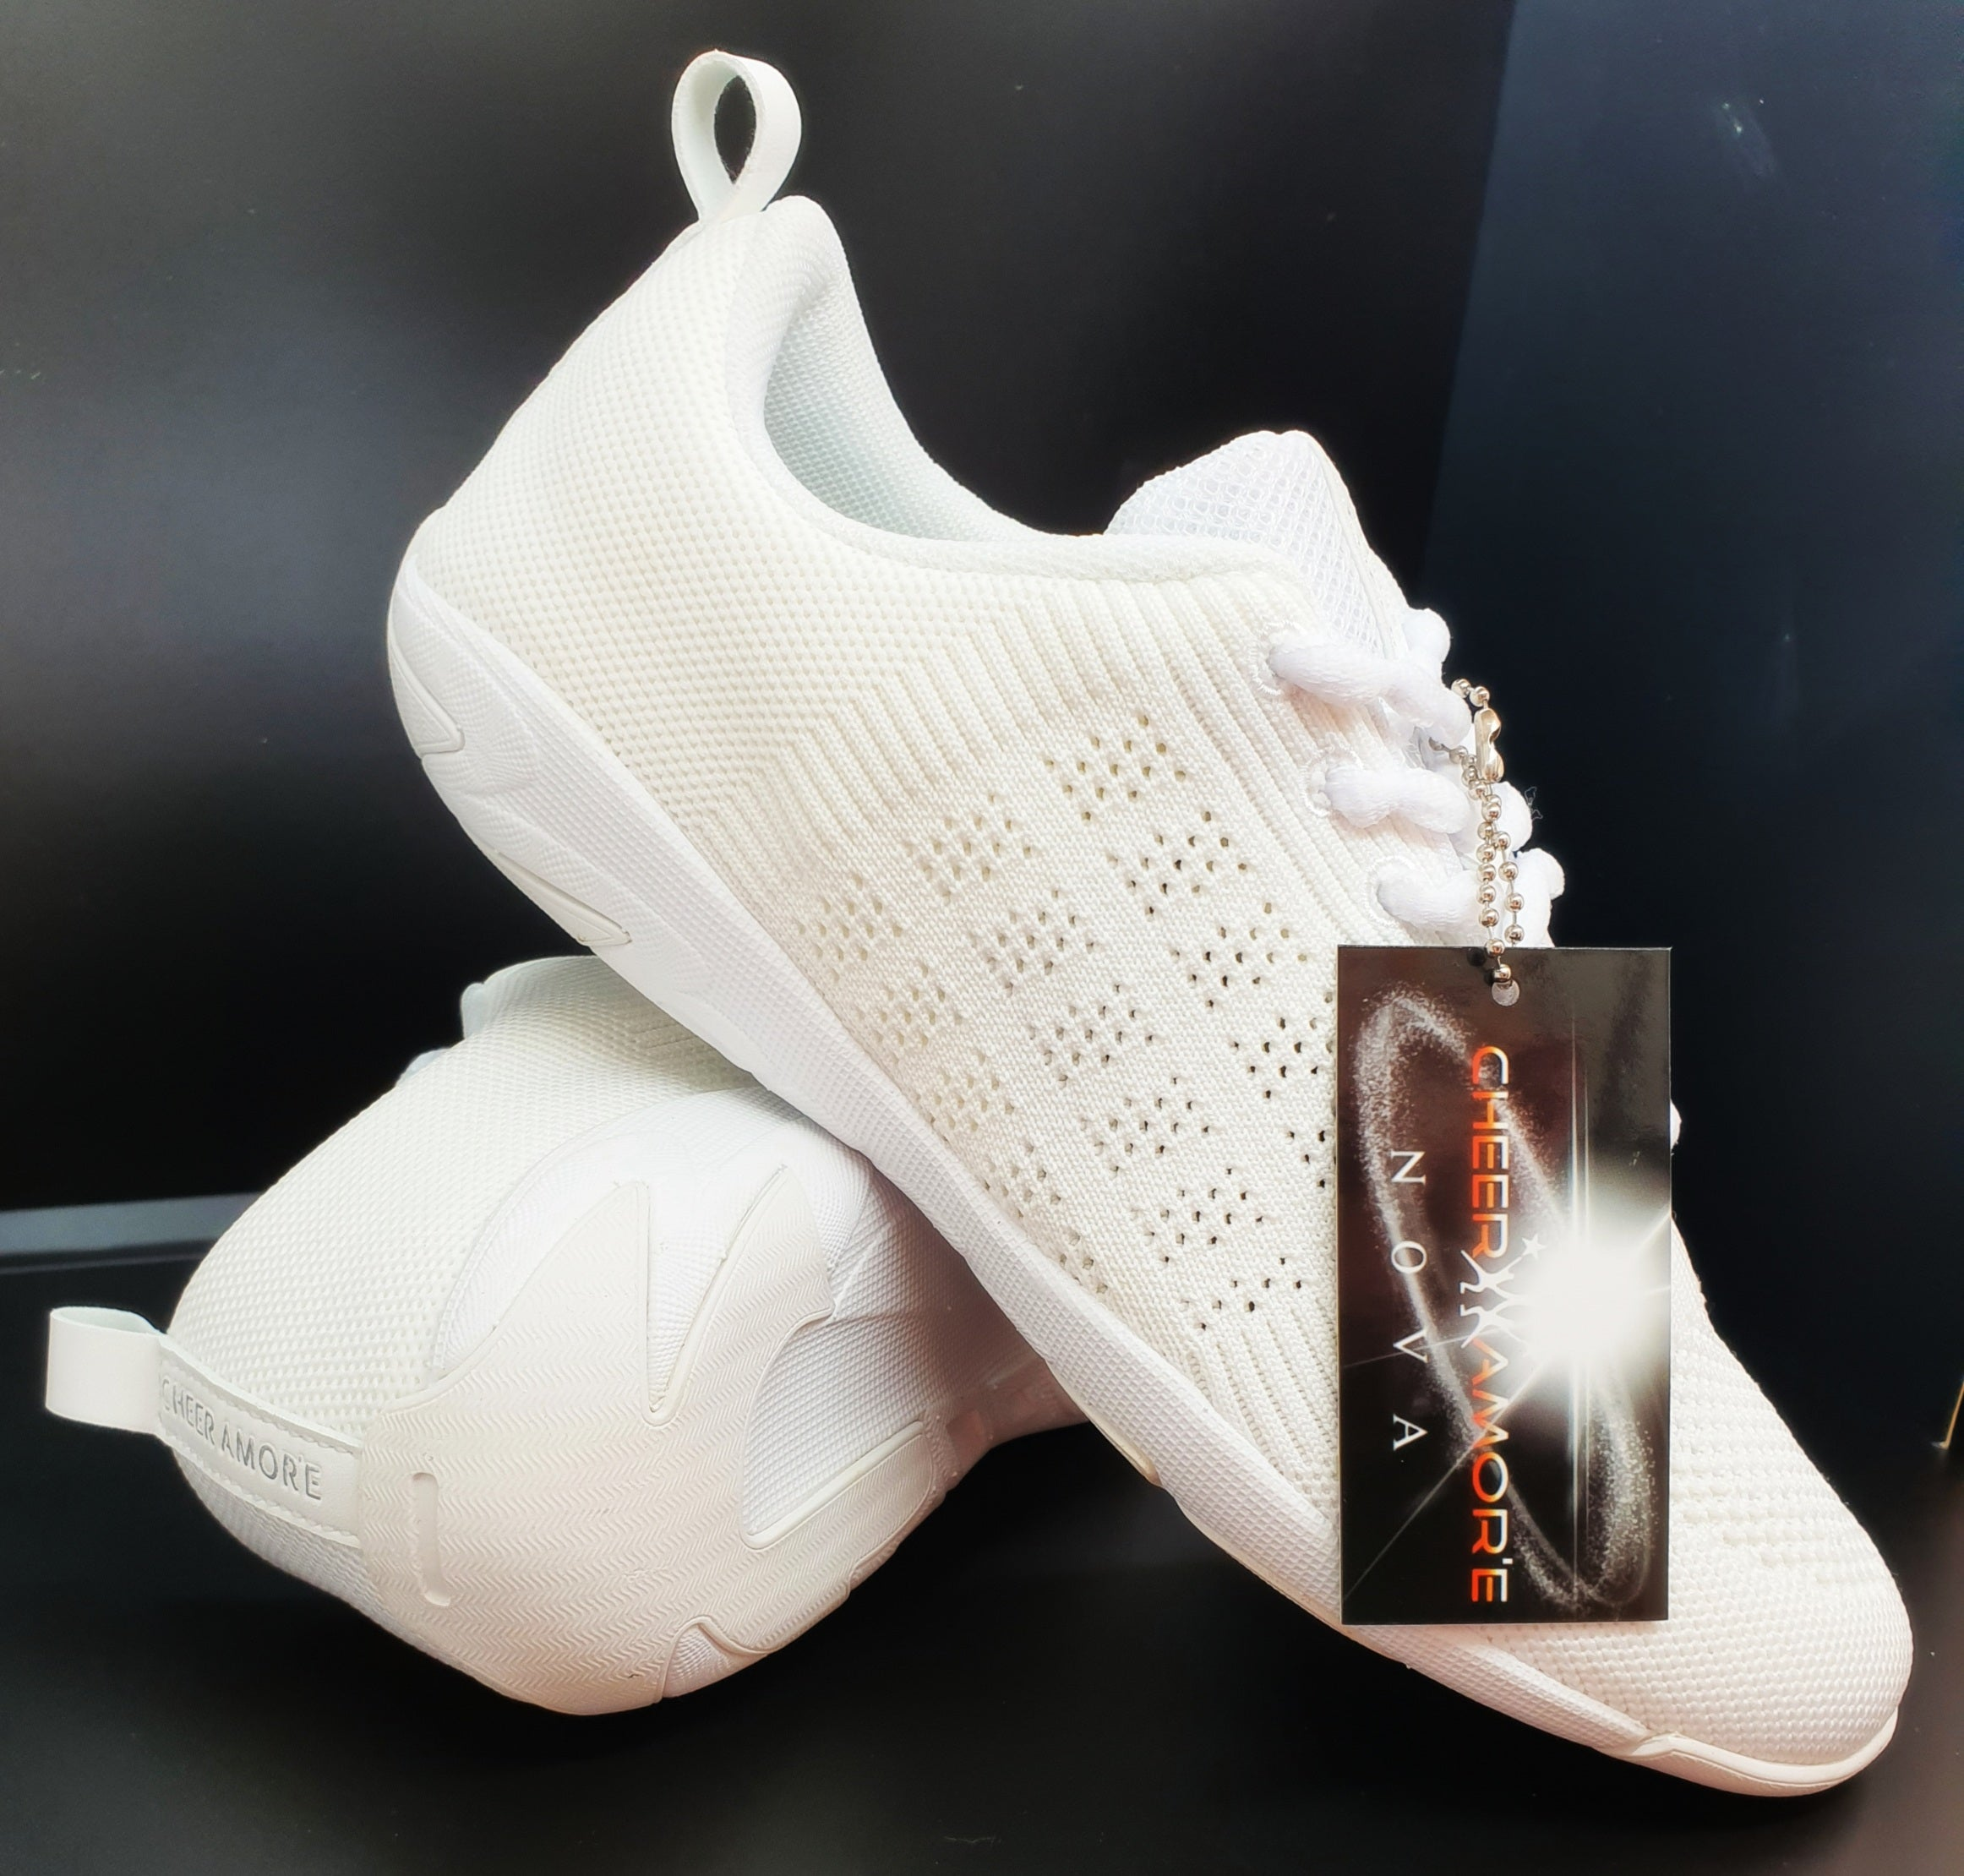 'Nova' Cheer Shoes & Shoe Bag